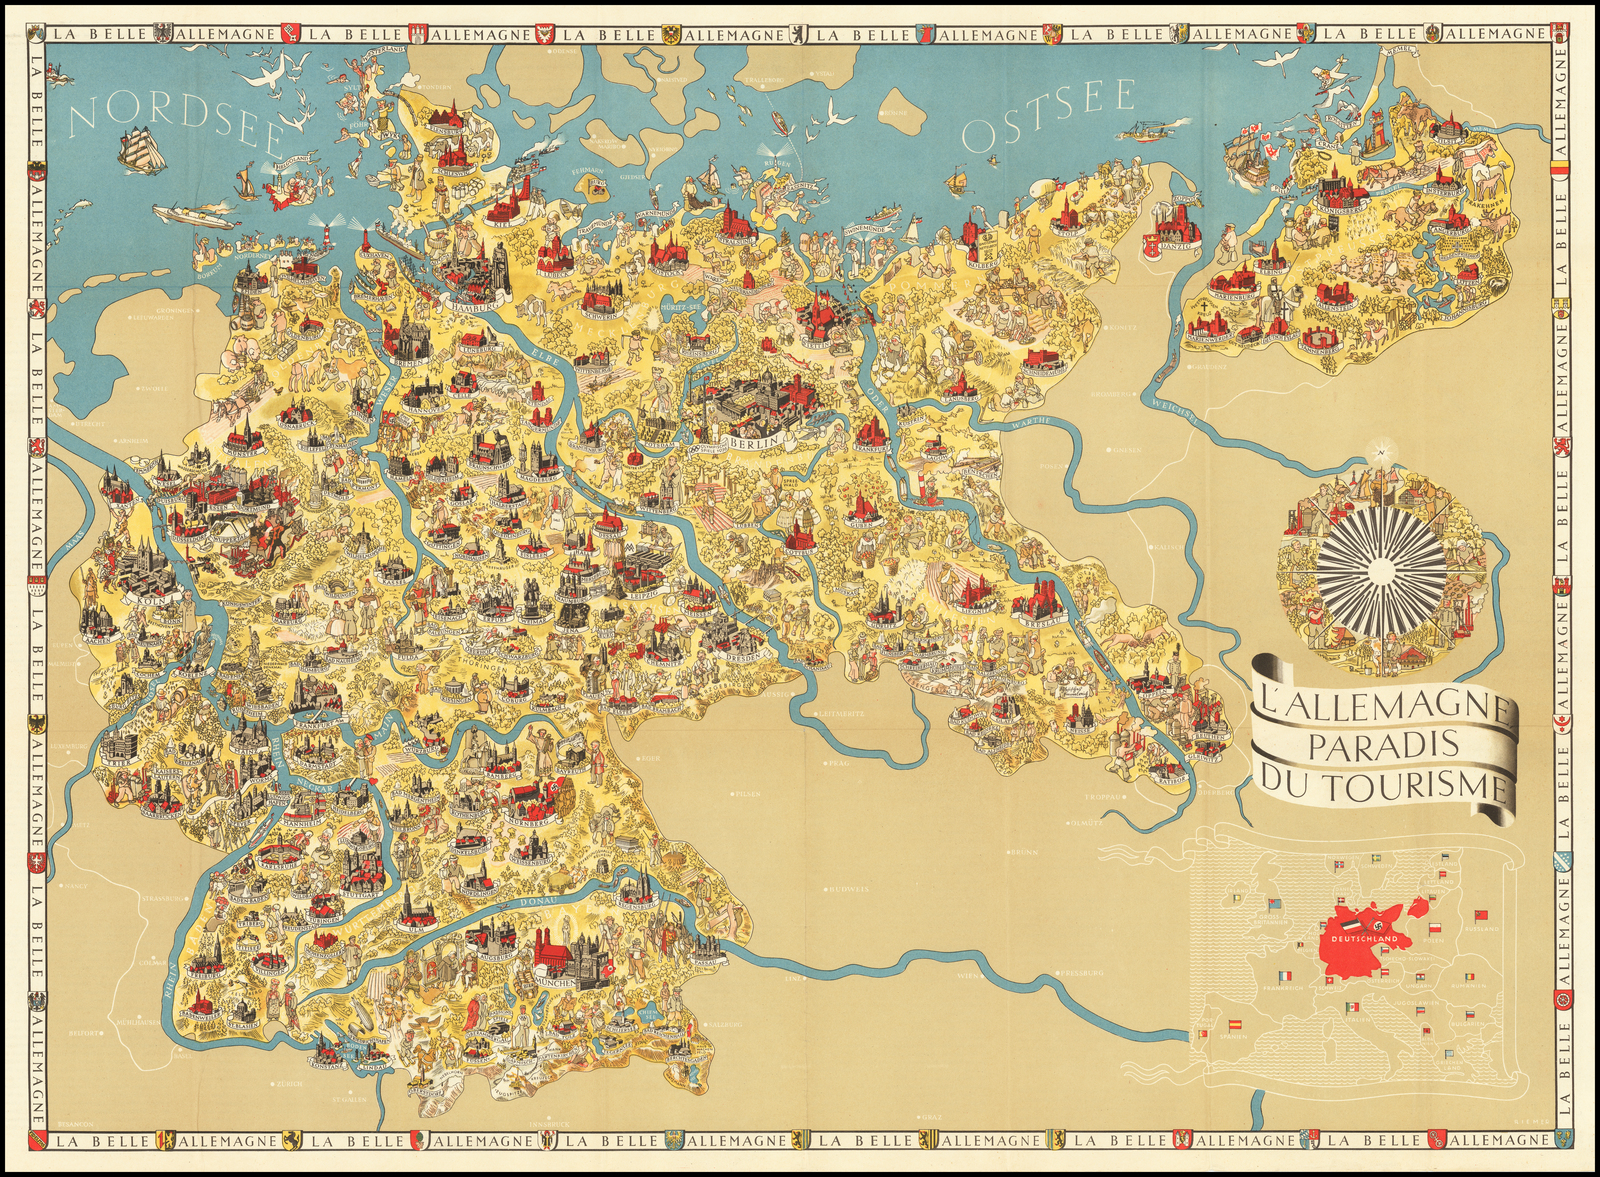 Second World War - Germany) L'Allemagne Paradis du ... on find a country on a map, north africa map, russia in asia, russia and byzantine empire map, europe map, nato bases map, russia map with cities and rivers, russia political map, russia and philippines map, russia and norway map, tajikistan on asia map, map of russia map, just asia map, countries border china map, russia and former soviet union map, russia and switzerland map, volgograd russia map, russia and france map, central america map, russia and caucasus map,